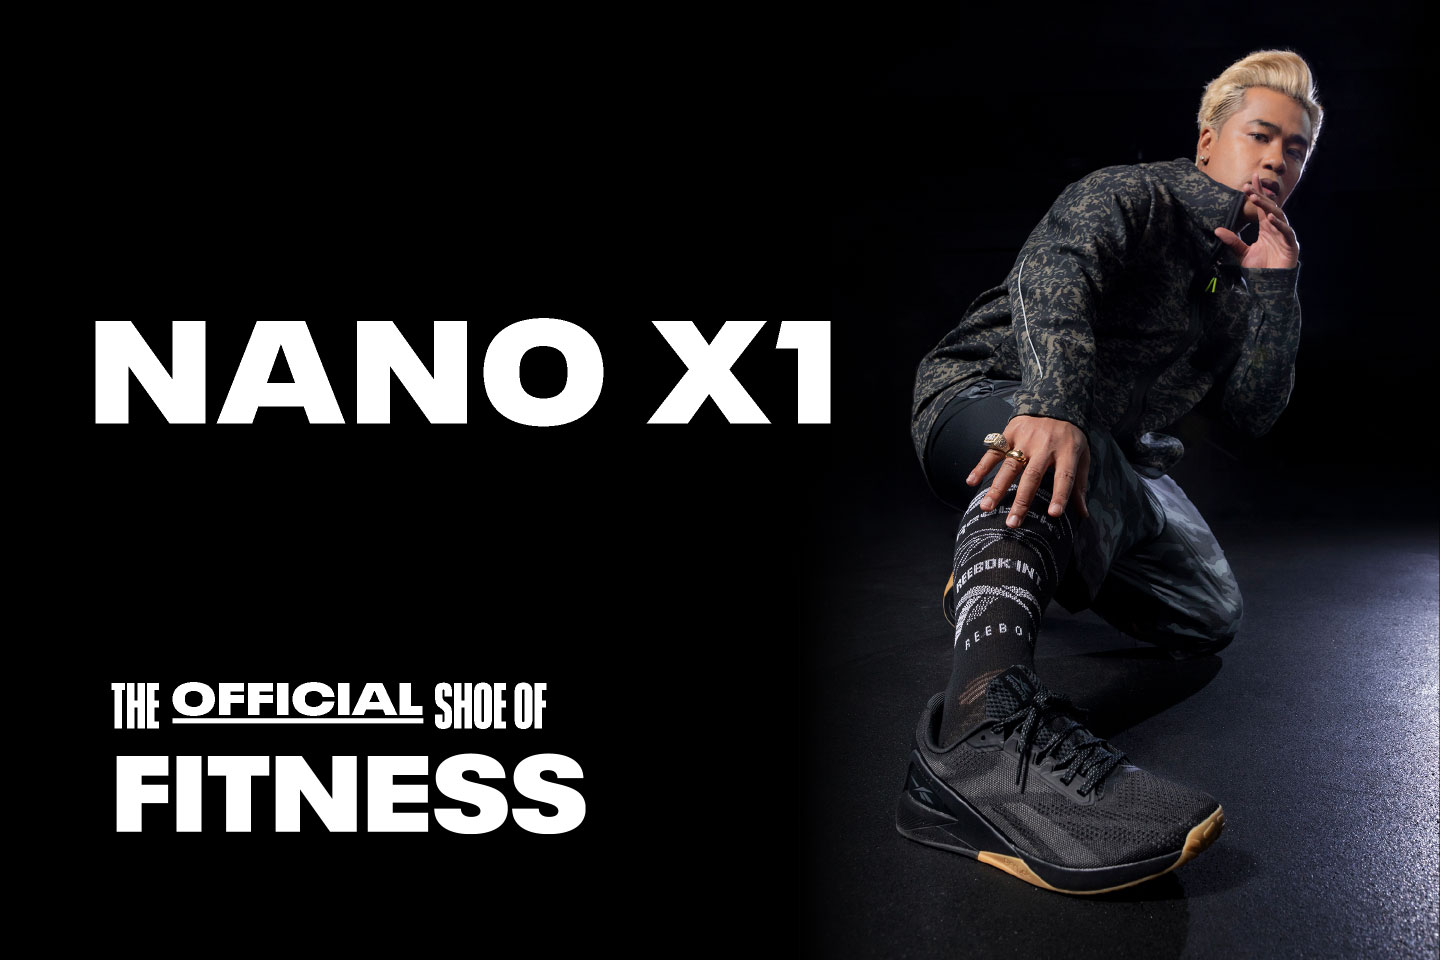 NANO X1 THE OFFICIAL SHOE OF  FITNESS